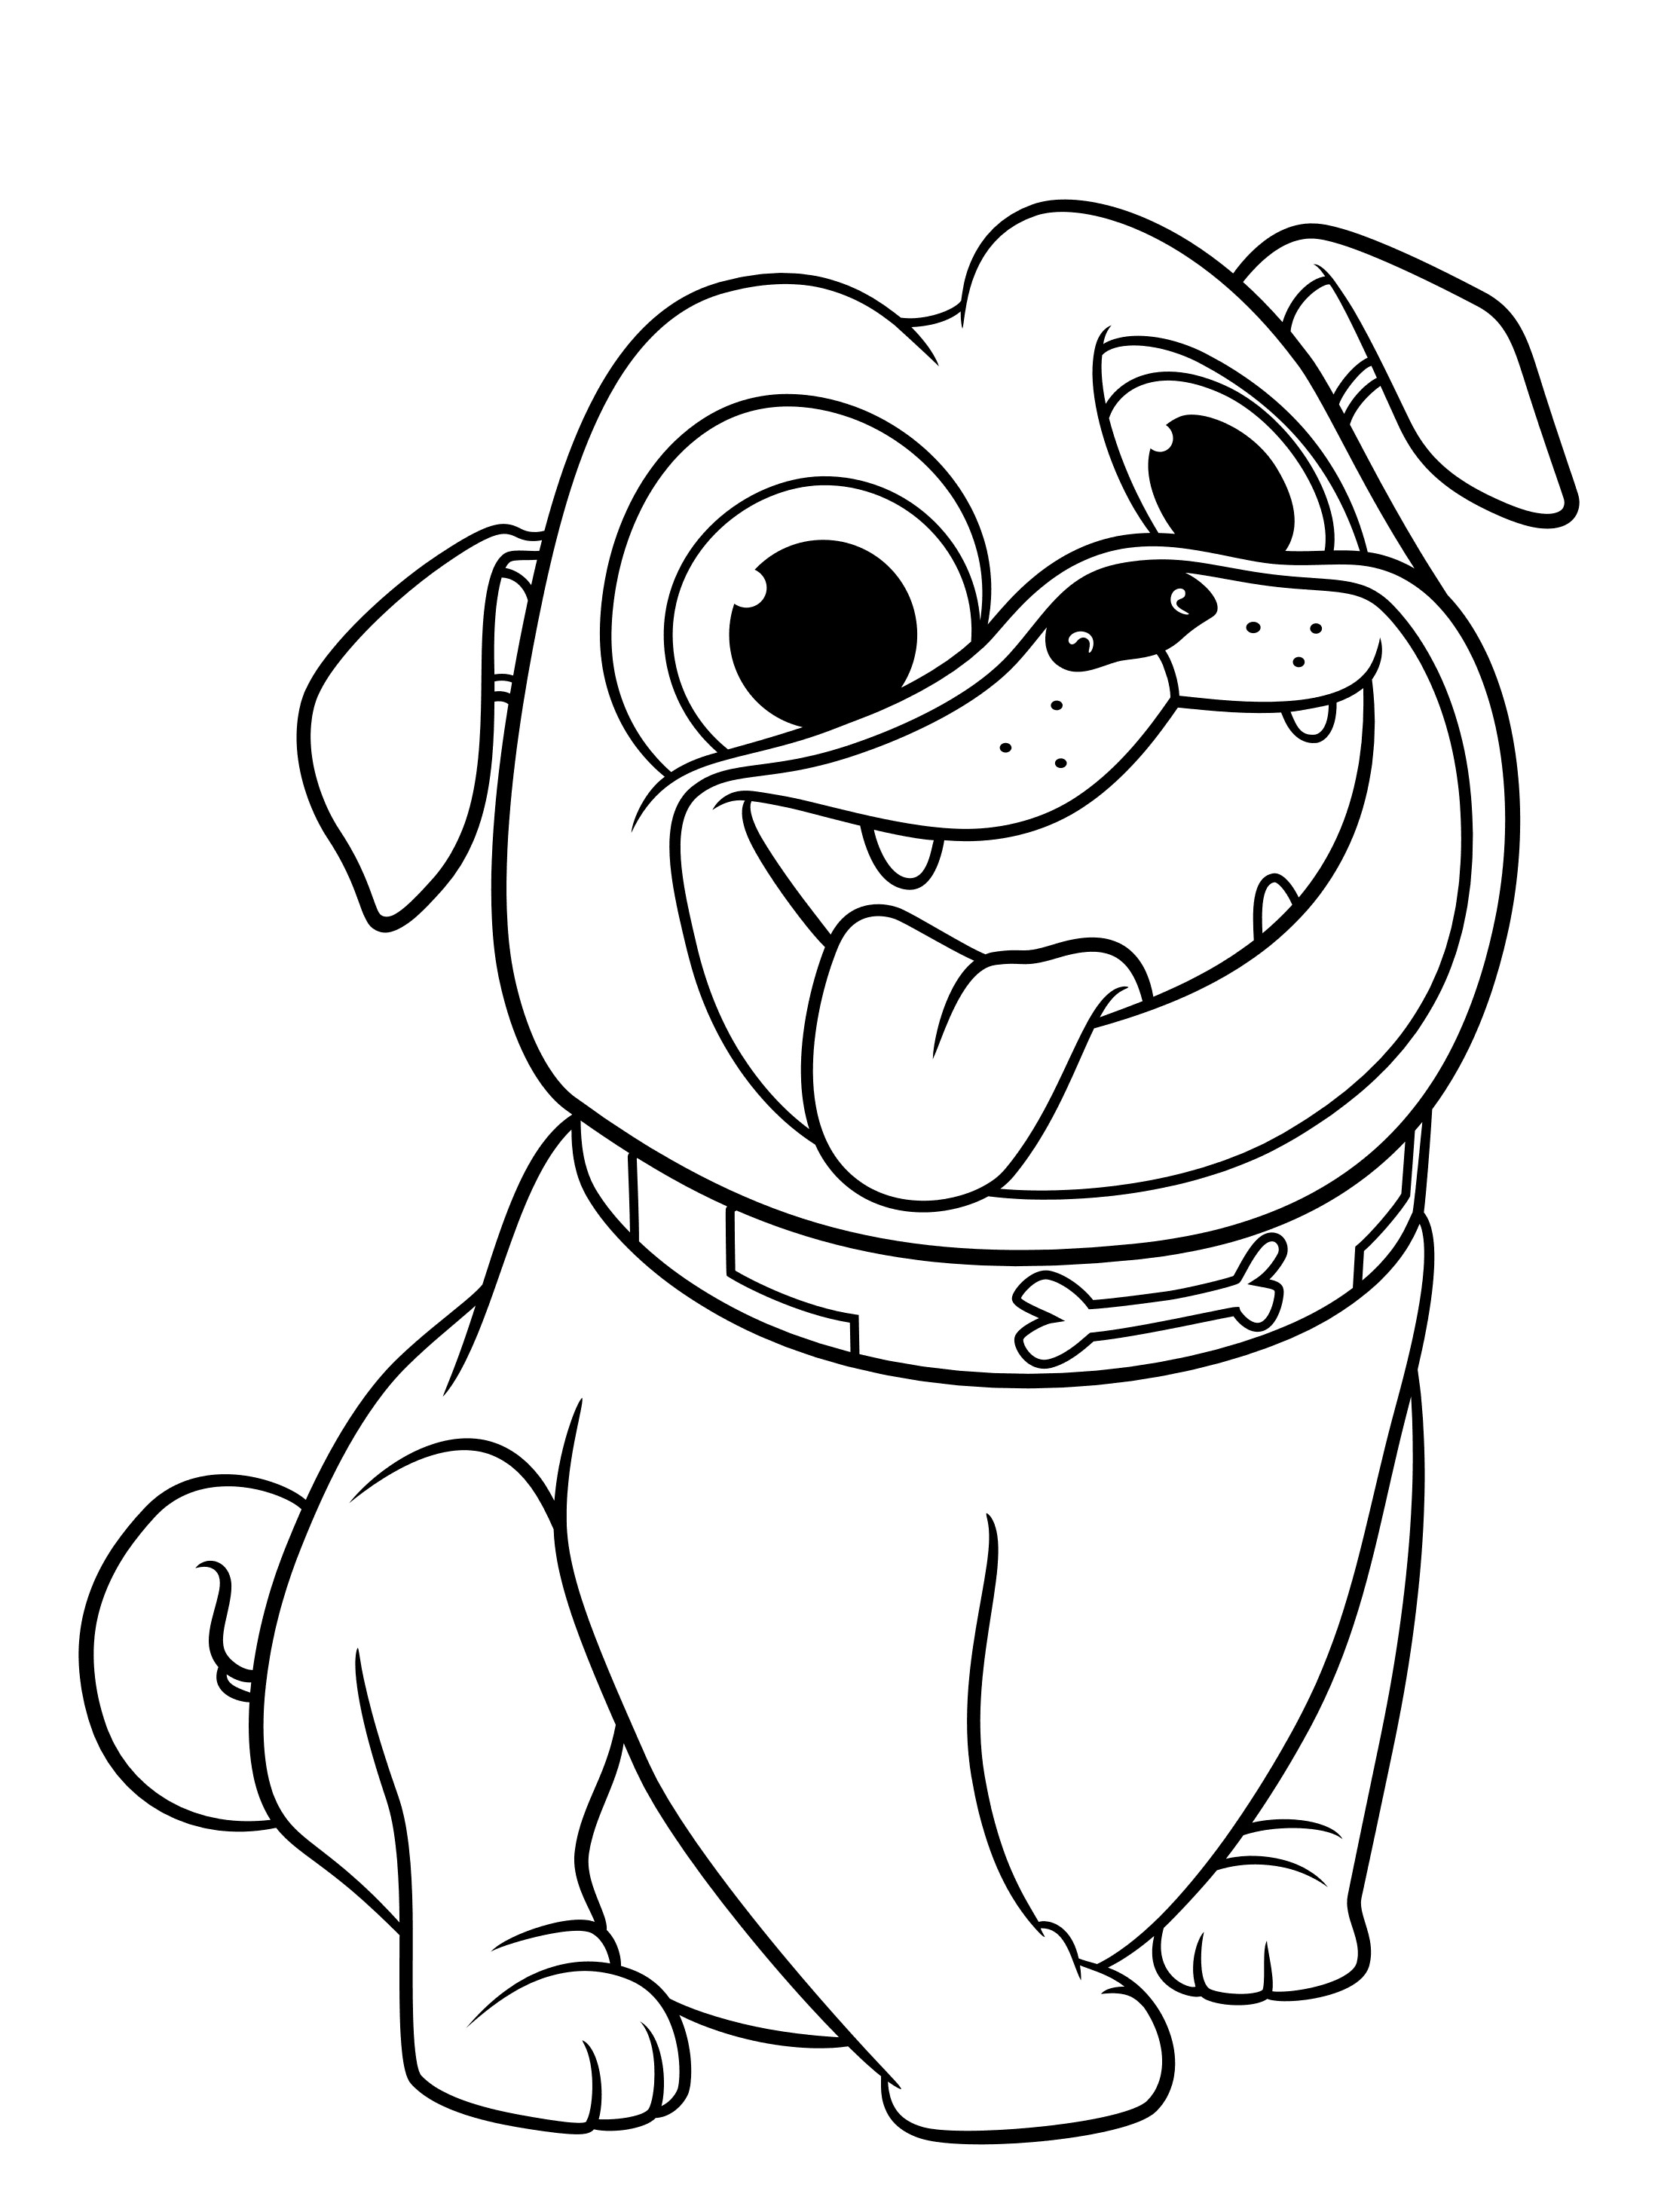 coloring sheet dog dog head bimdeedee dogs adult coloring pages sheet coloring dog